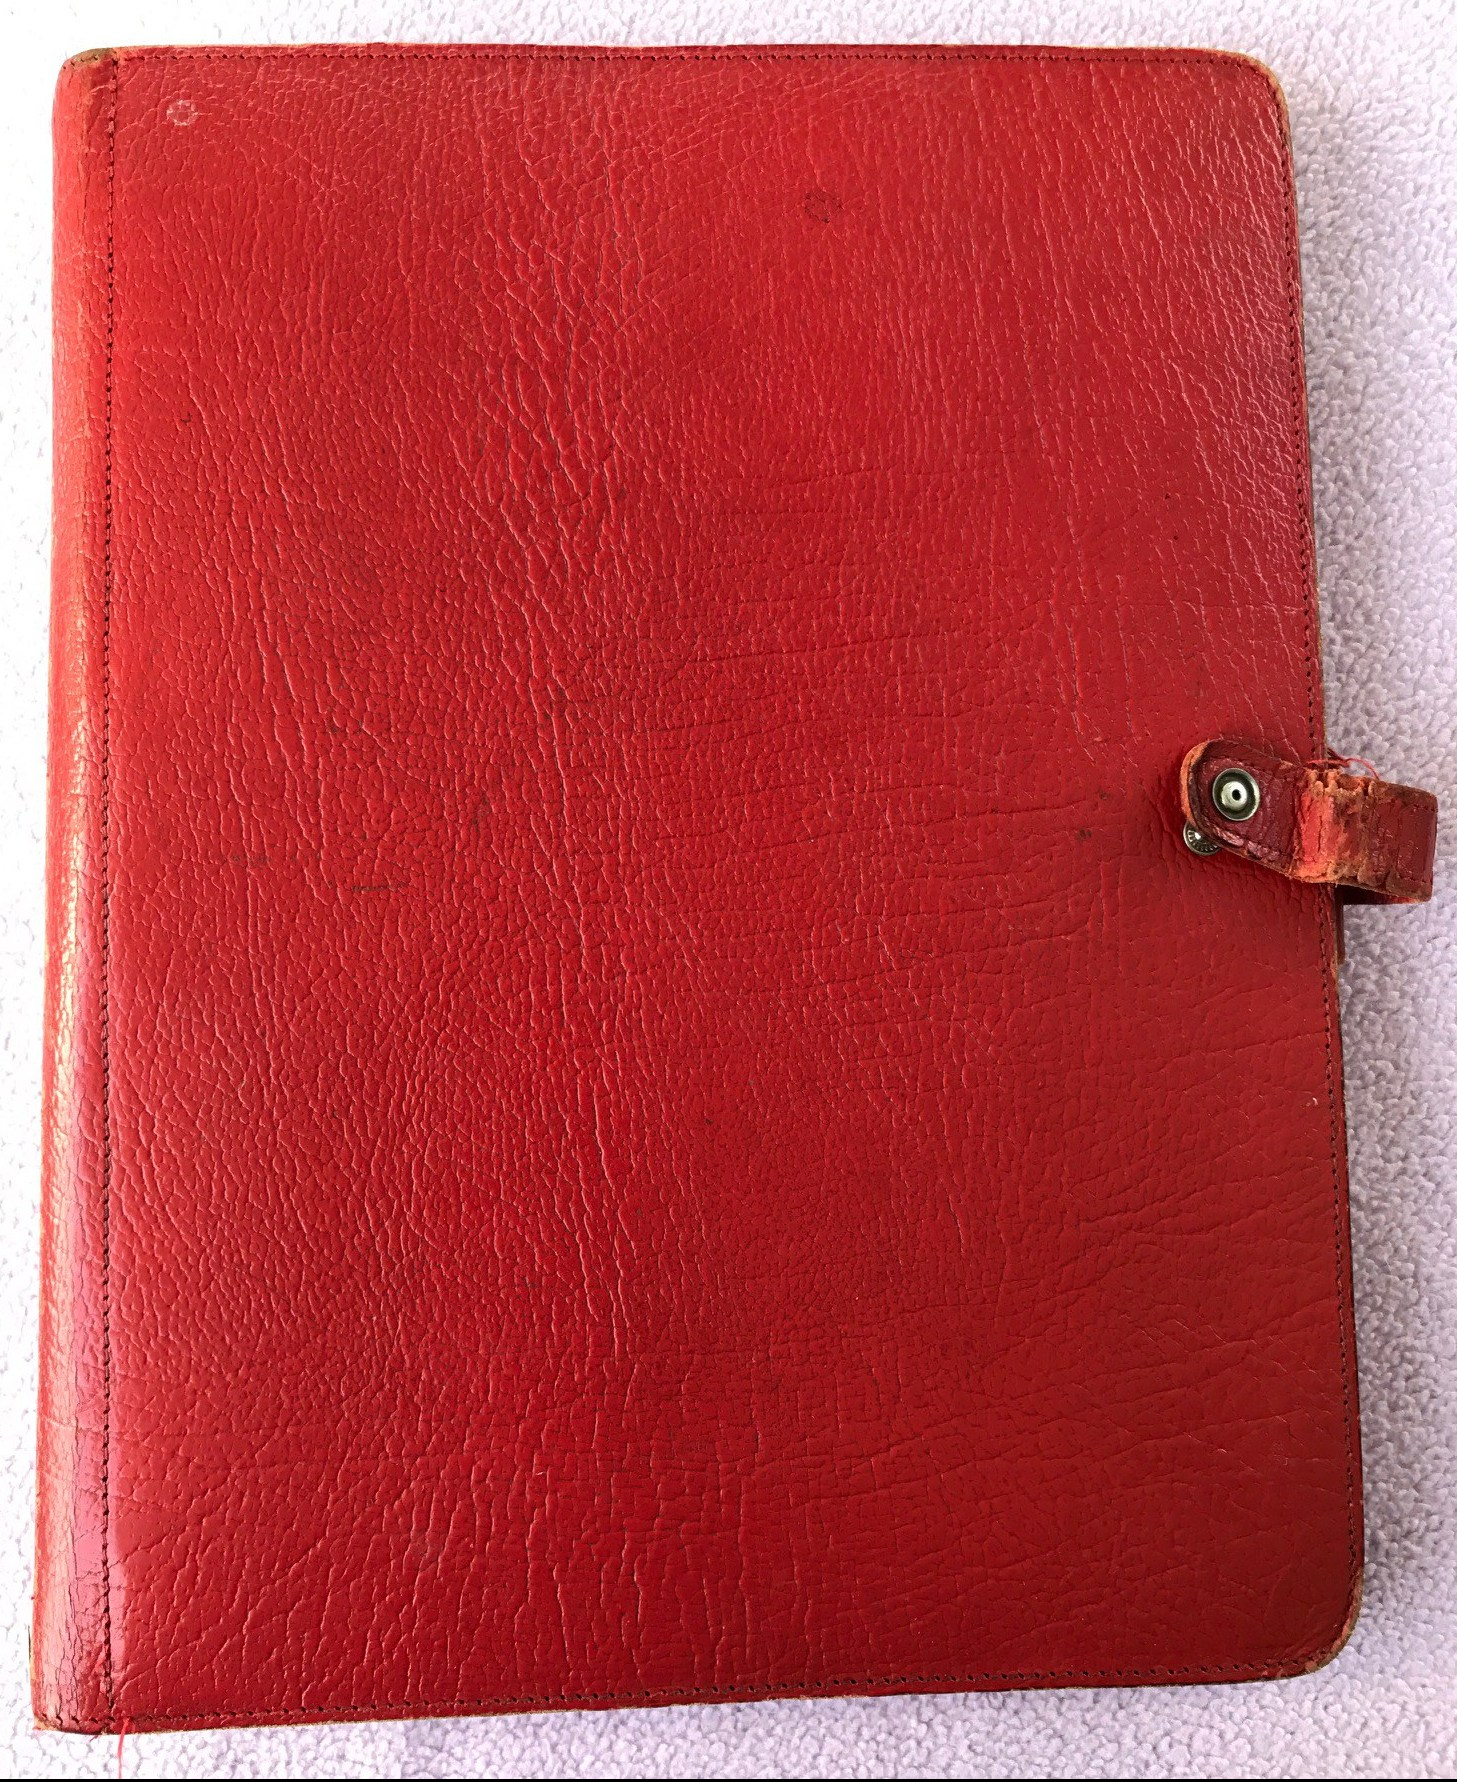 Calf leather Red Deskfax orgniser